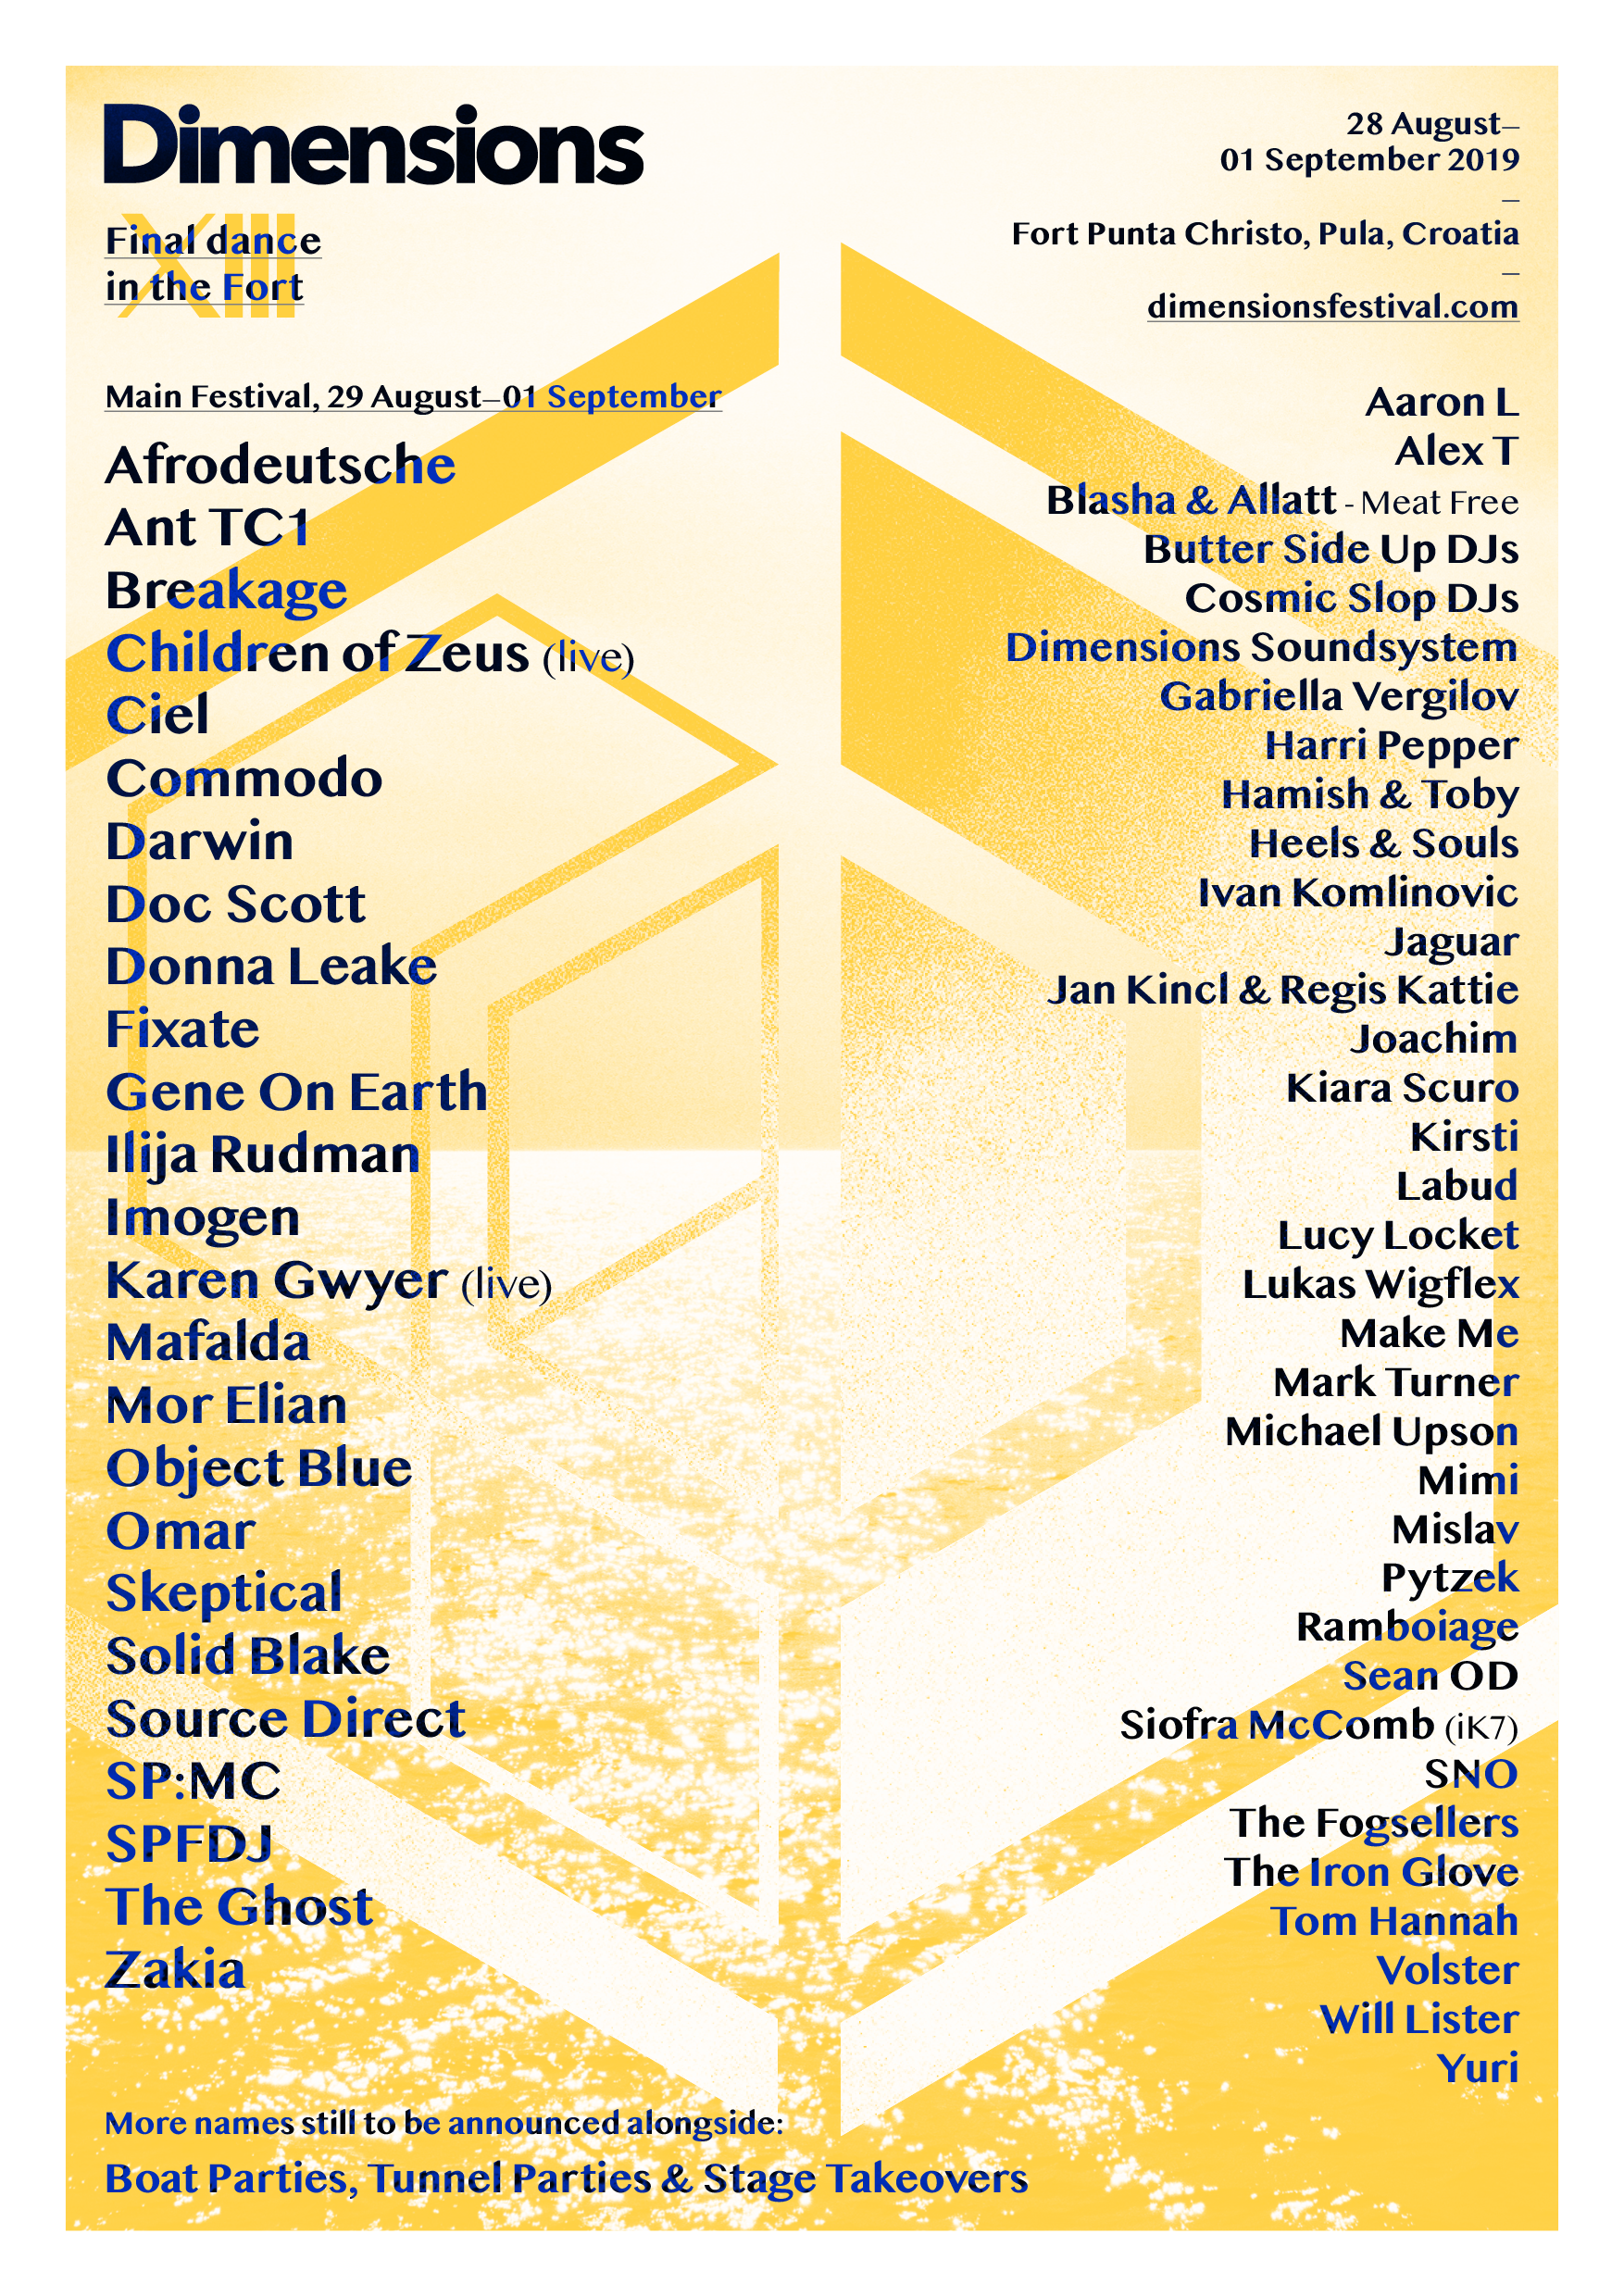 Final Dance in The Fort Dimensions Festival 2019